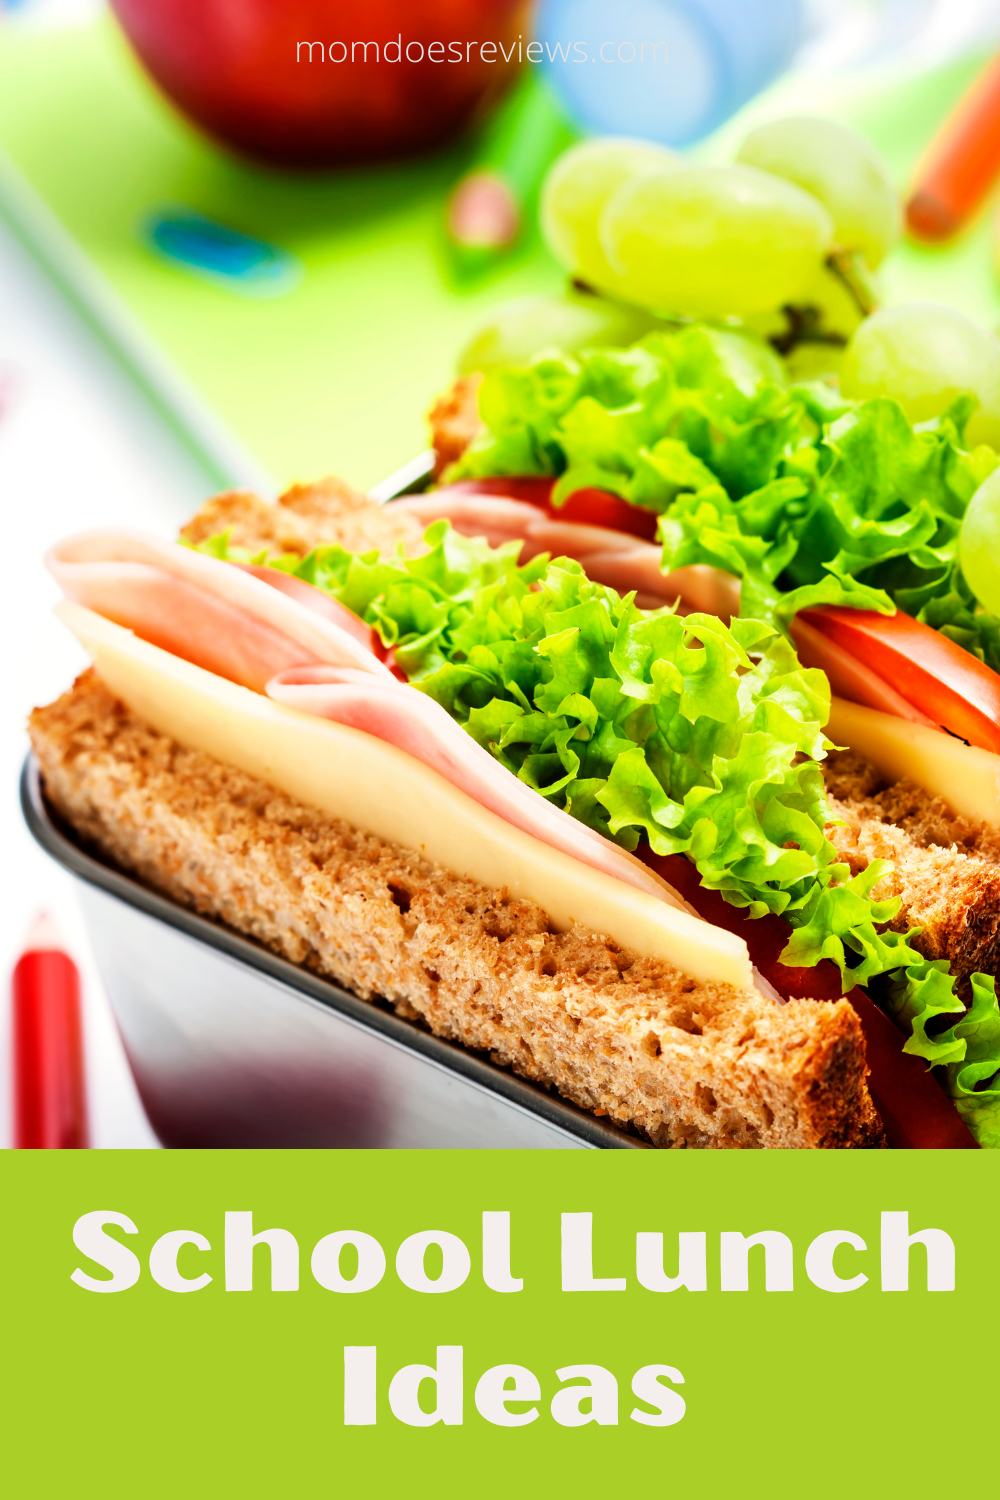 4 School Lunch Ideas for Busy Parents and Kids